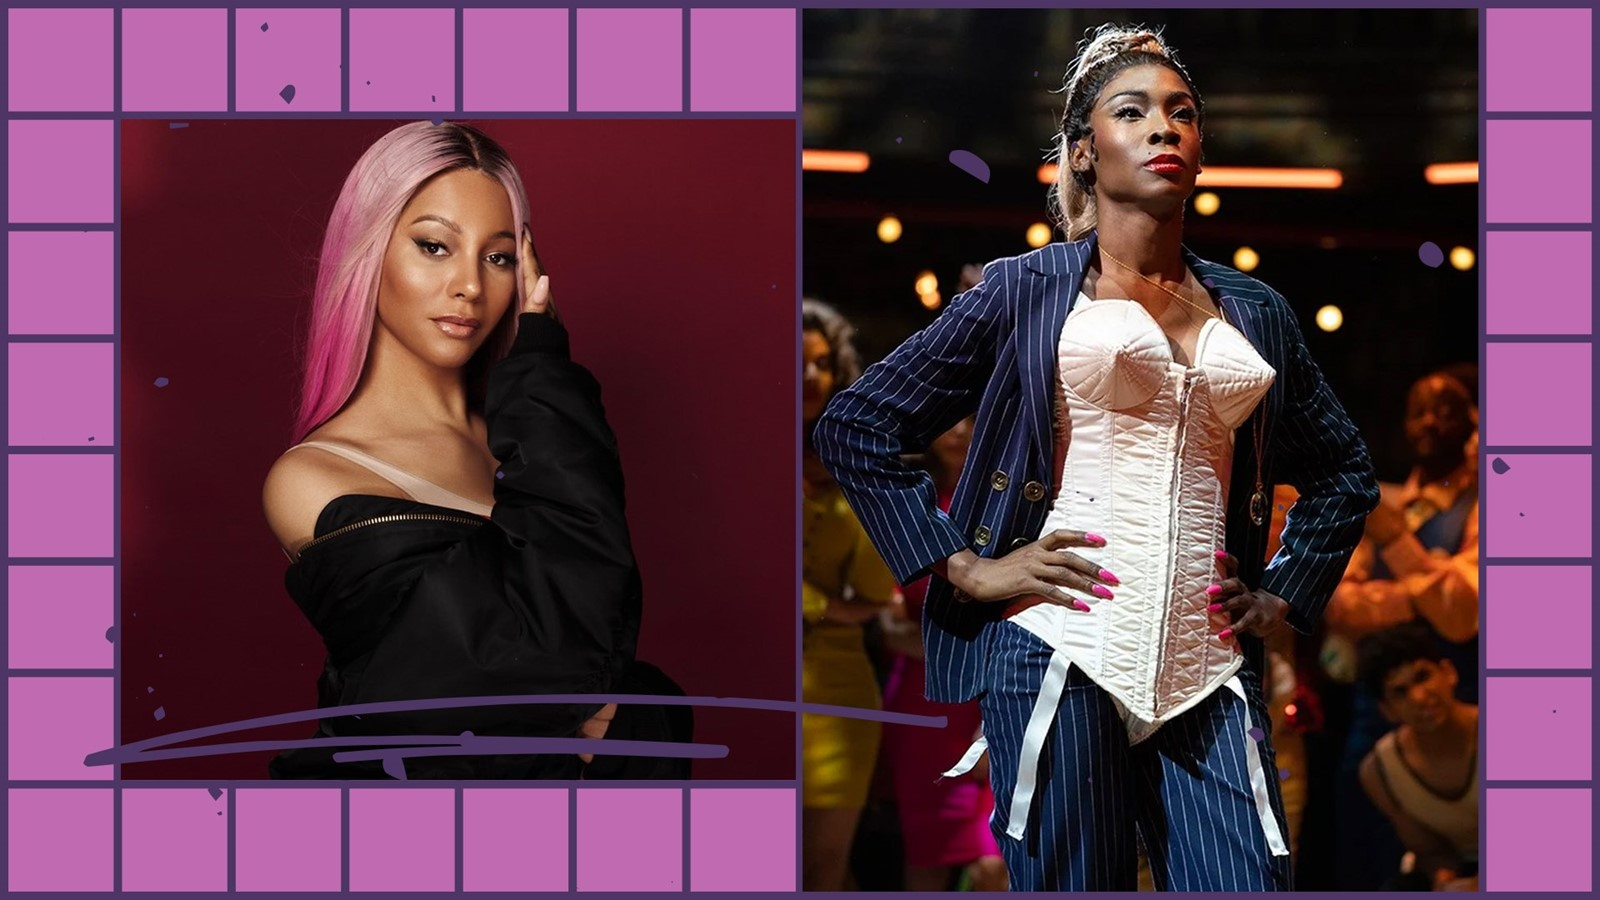 Munroe Bergdorf and Angelica Ross